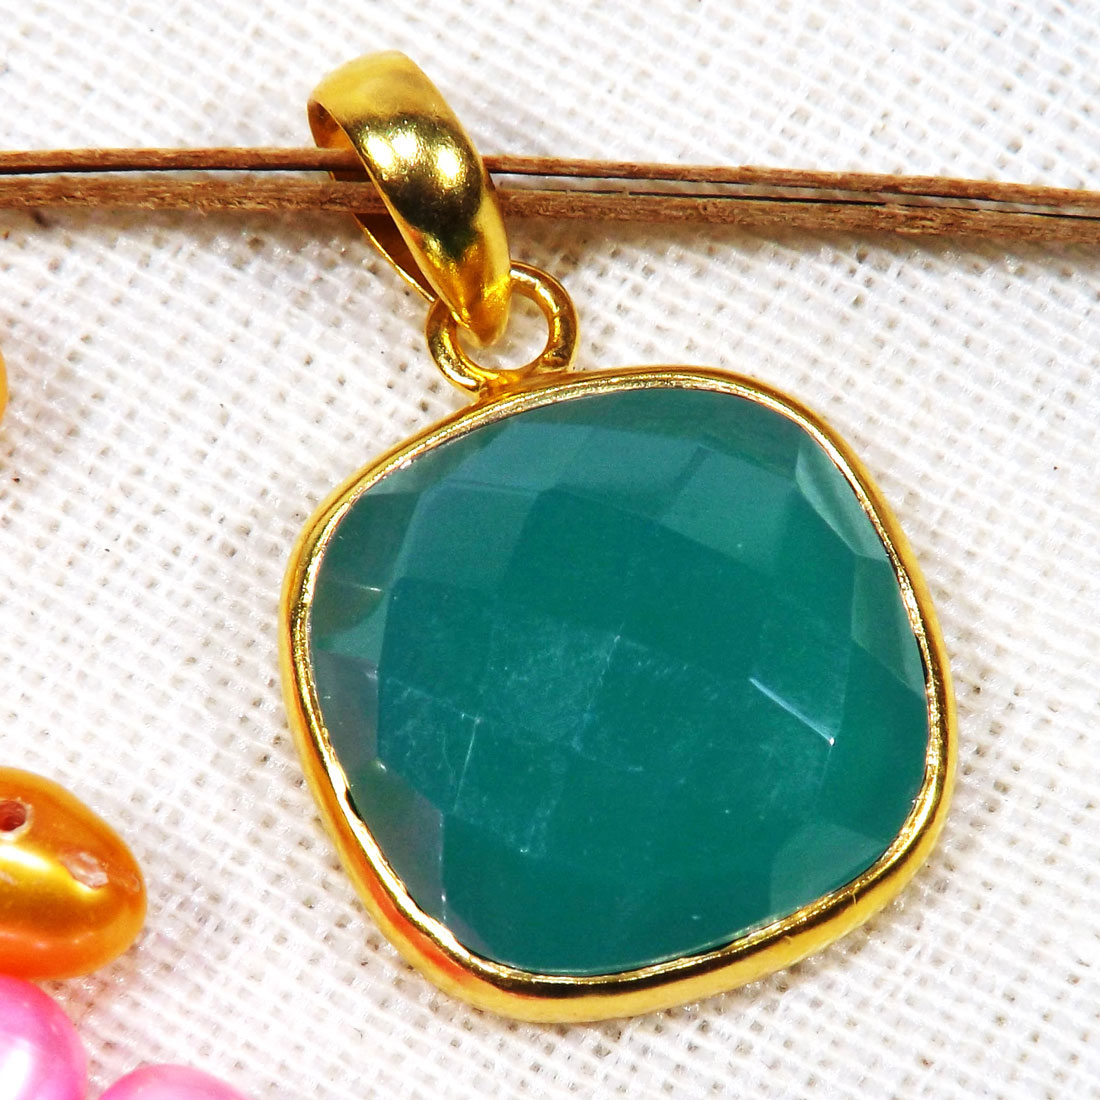 Green Onyx Cut F - BGP999-14TO15mm Cushion Looking Amazing Pendants of 18 Crt Gold